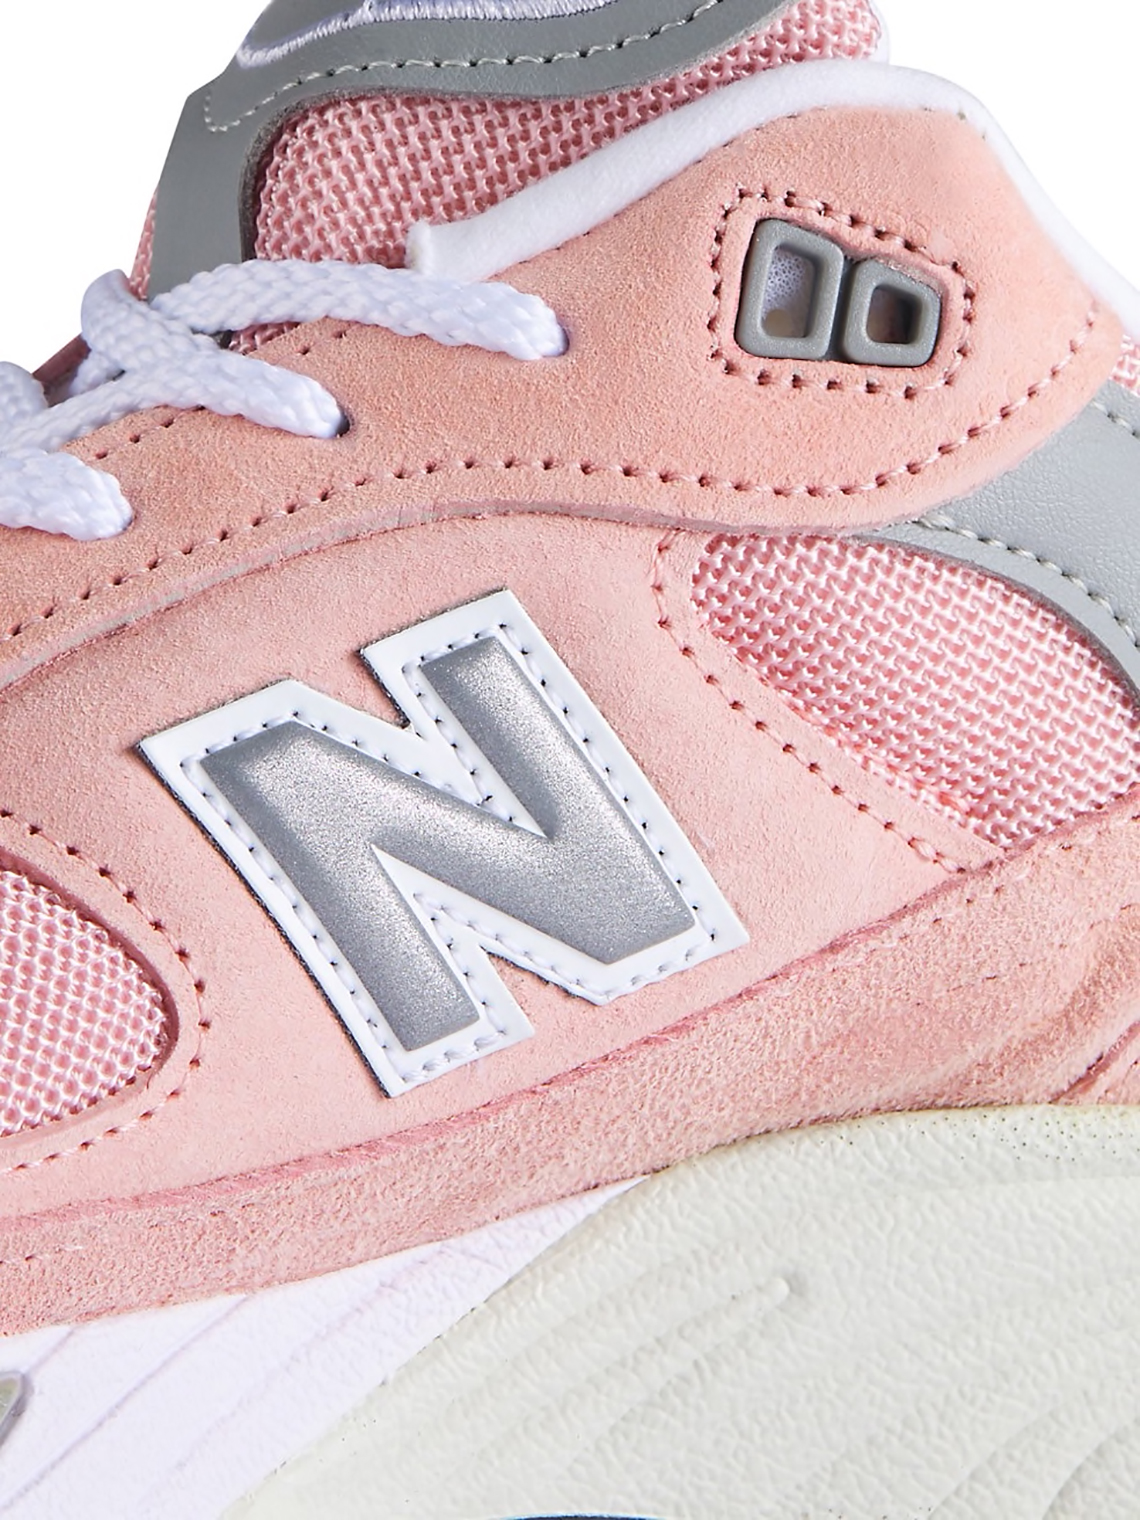 New Balance 991 Made in UK Shy Pink Release Date   SneakerNews.com